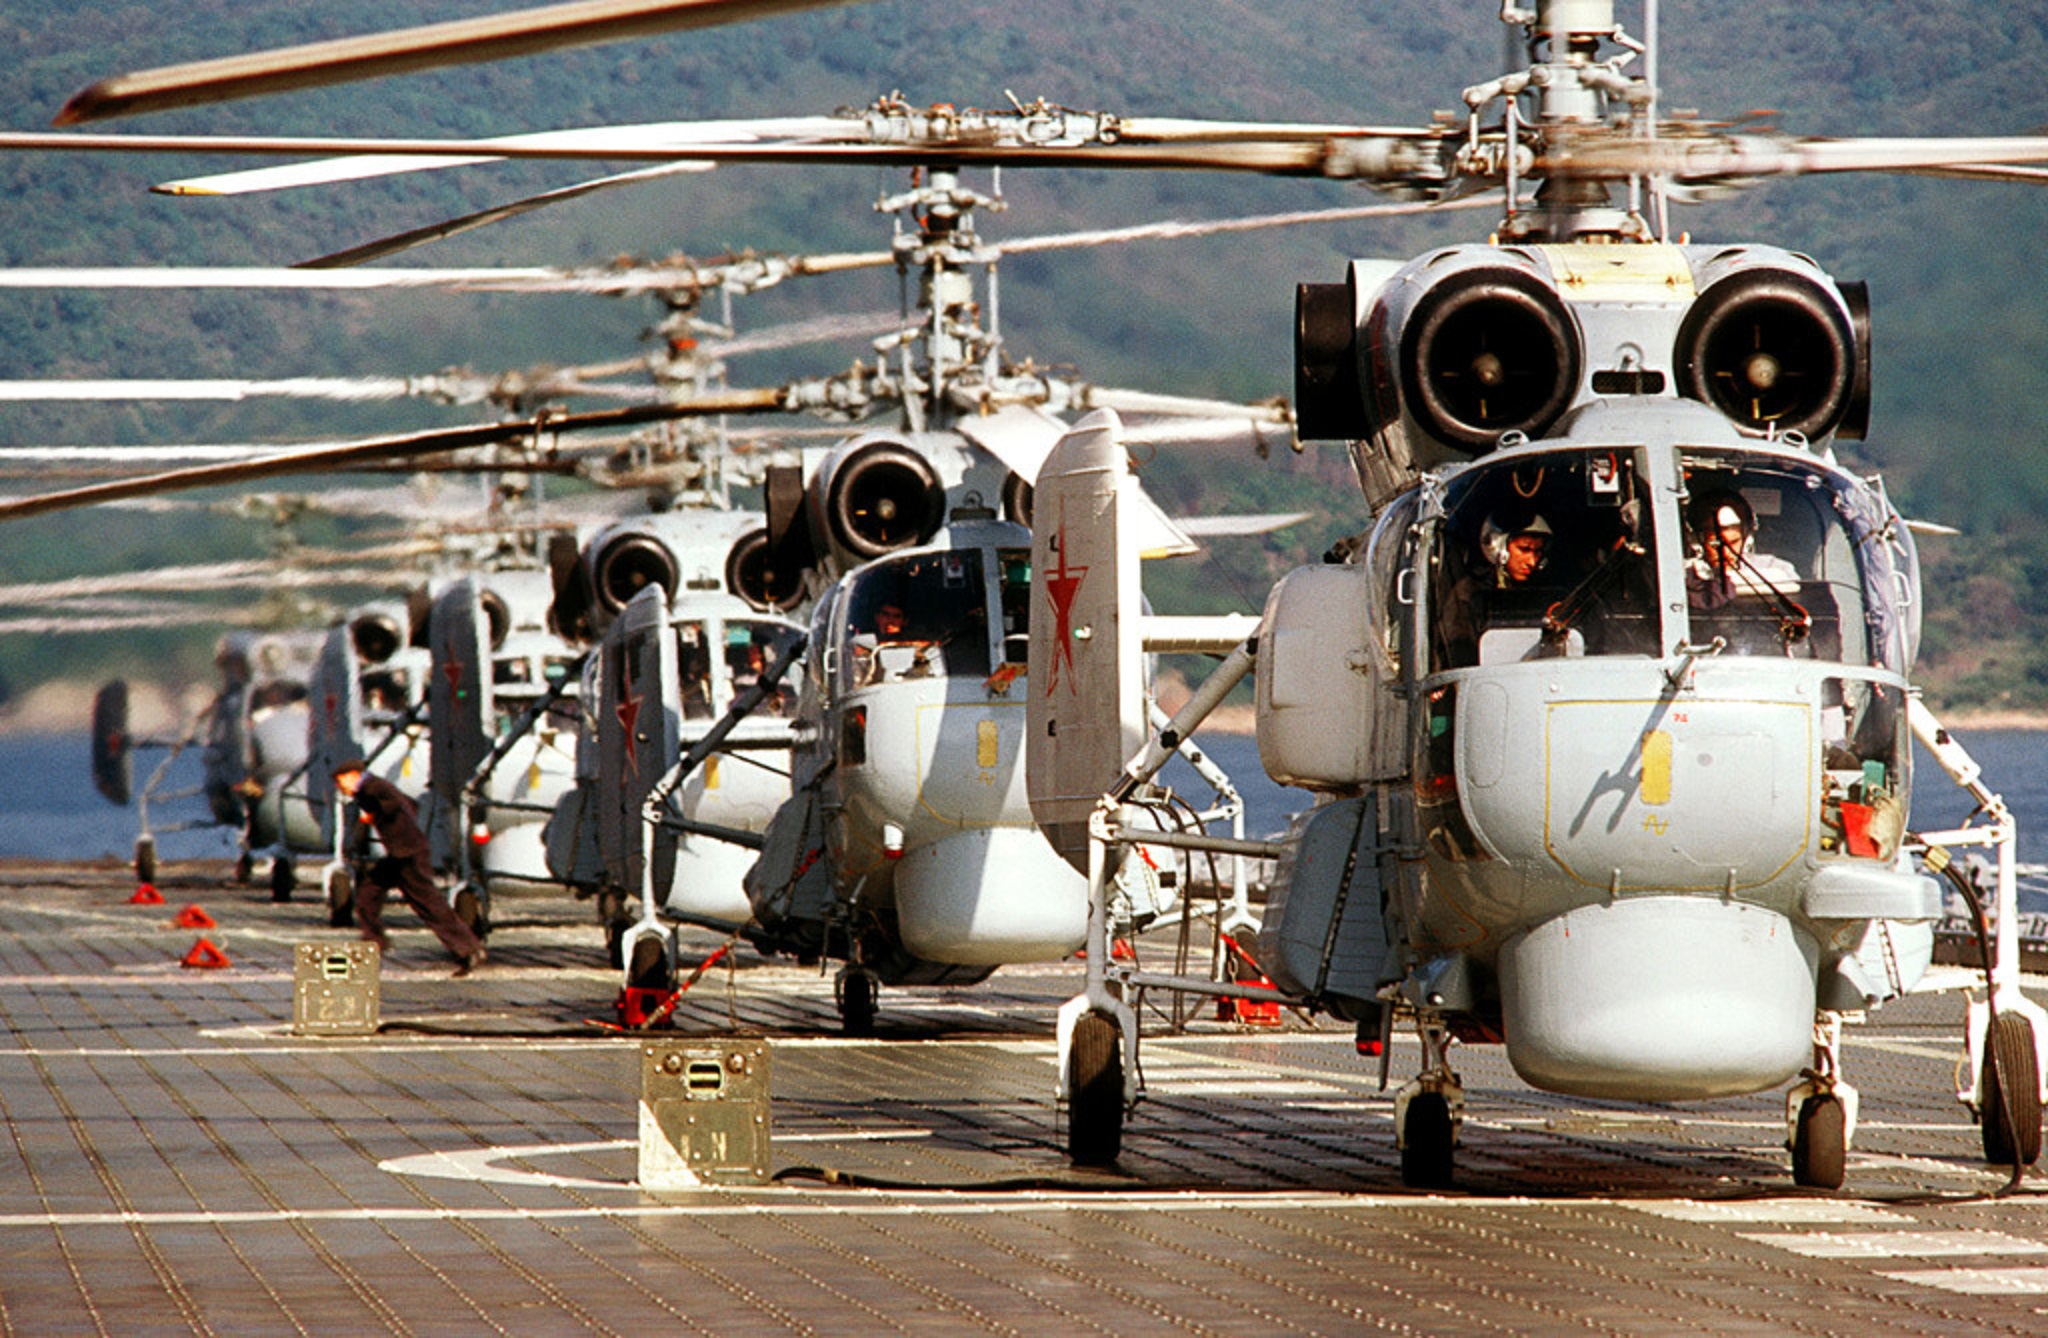 Ka-27s aboard the aircraft carrier Novorossiysk in 1984.jpg